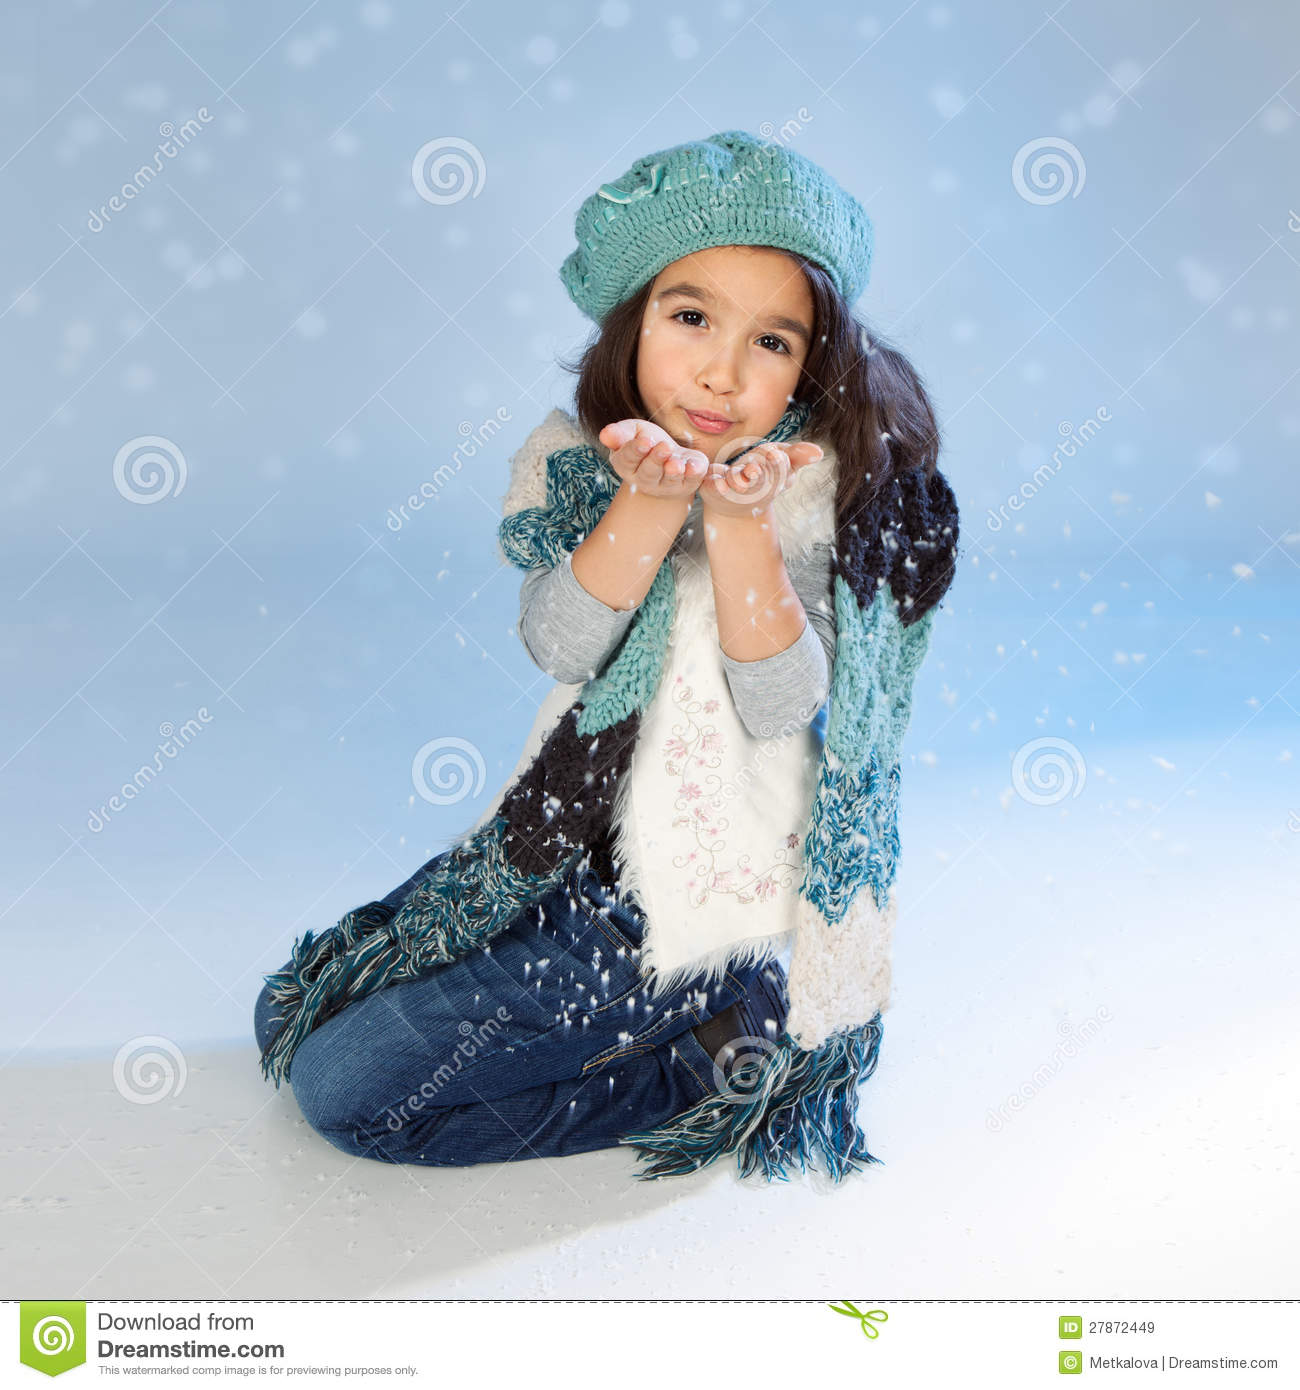 Beautiful Girl With Hat Wallpapers Winter Girl Blowing Snow Stock Image Image Of Blue